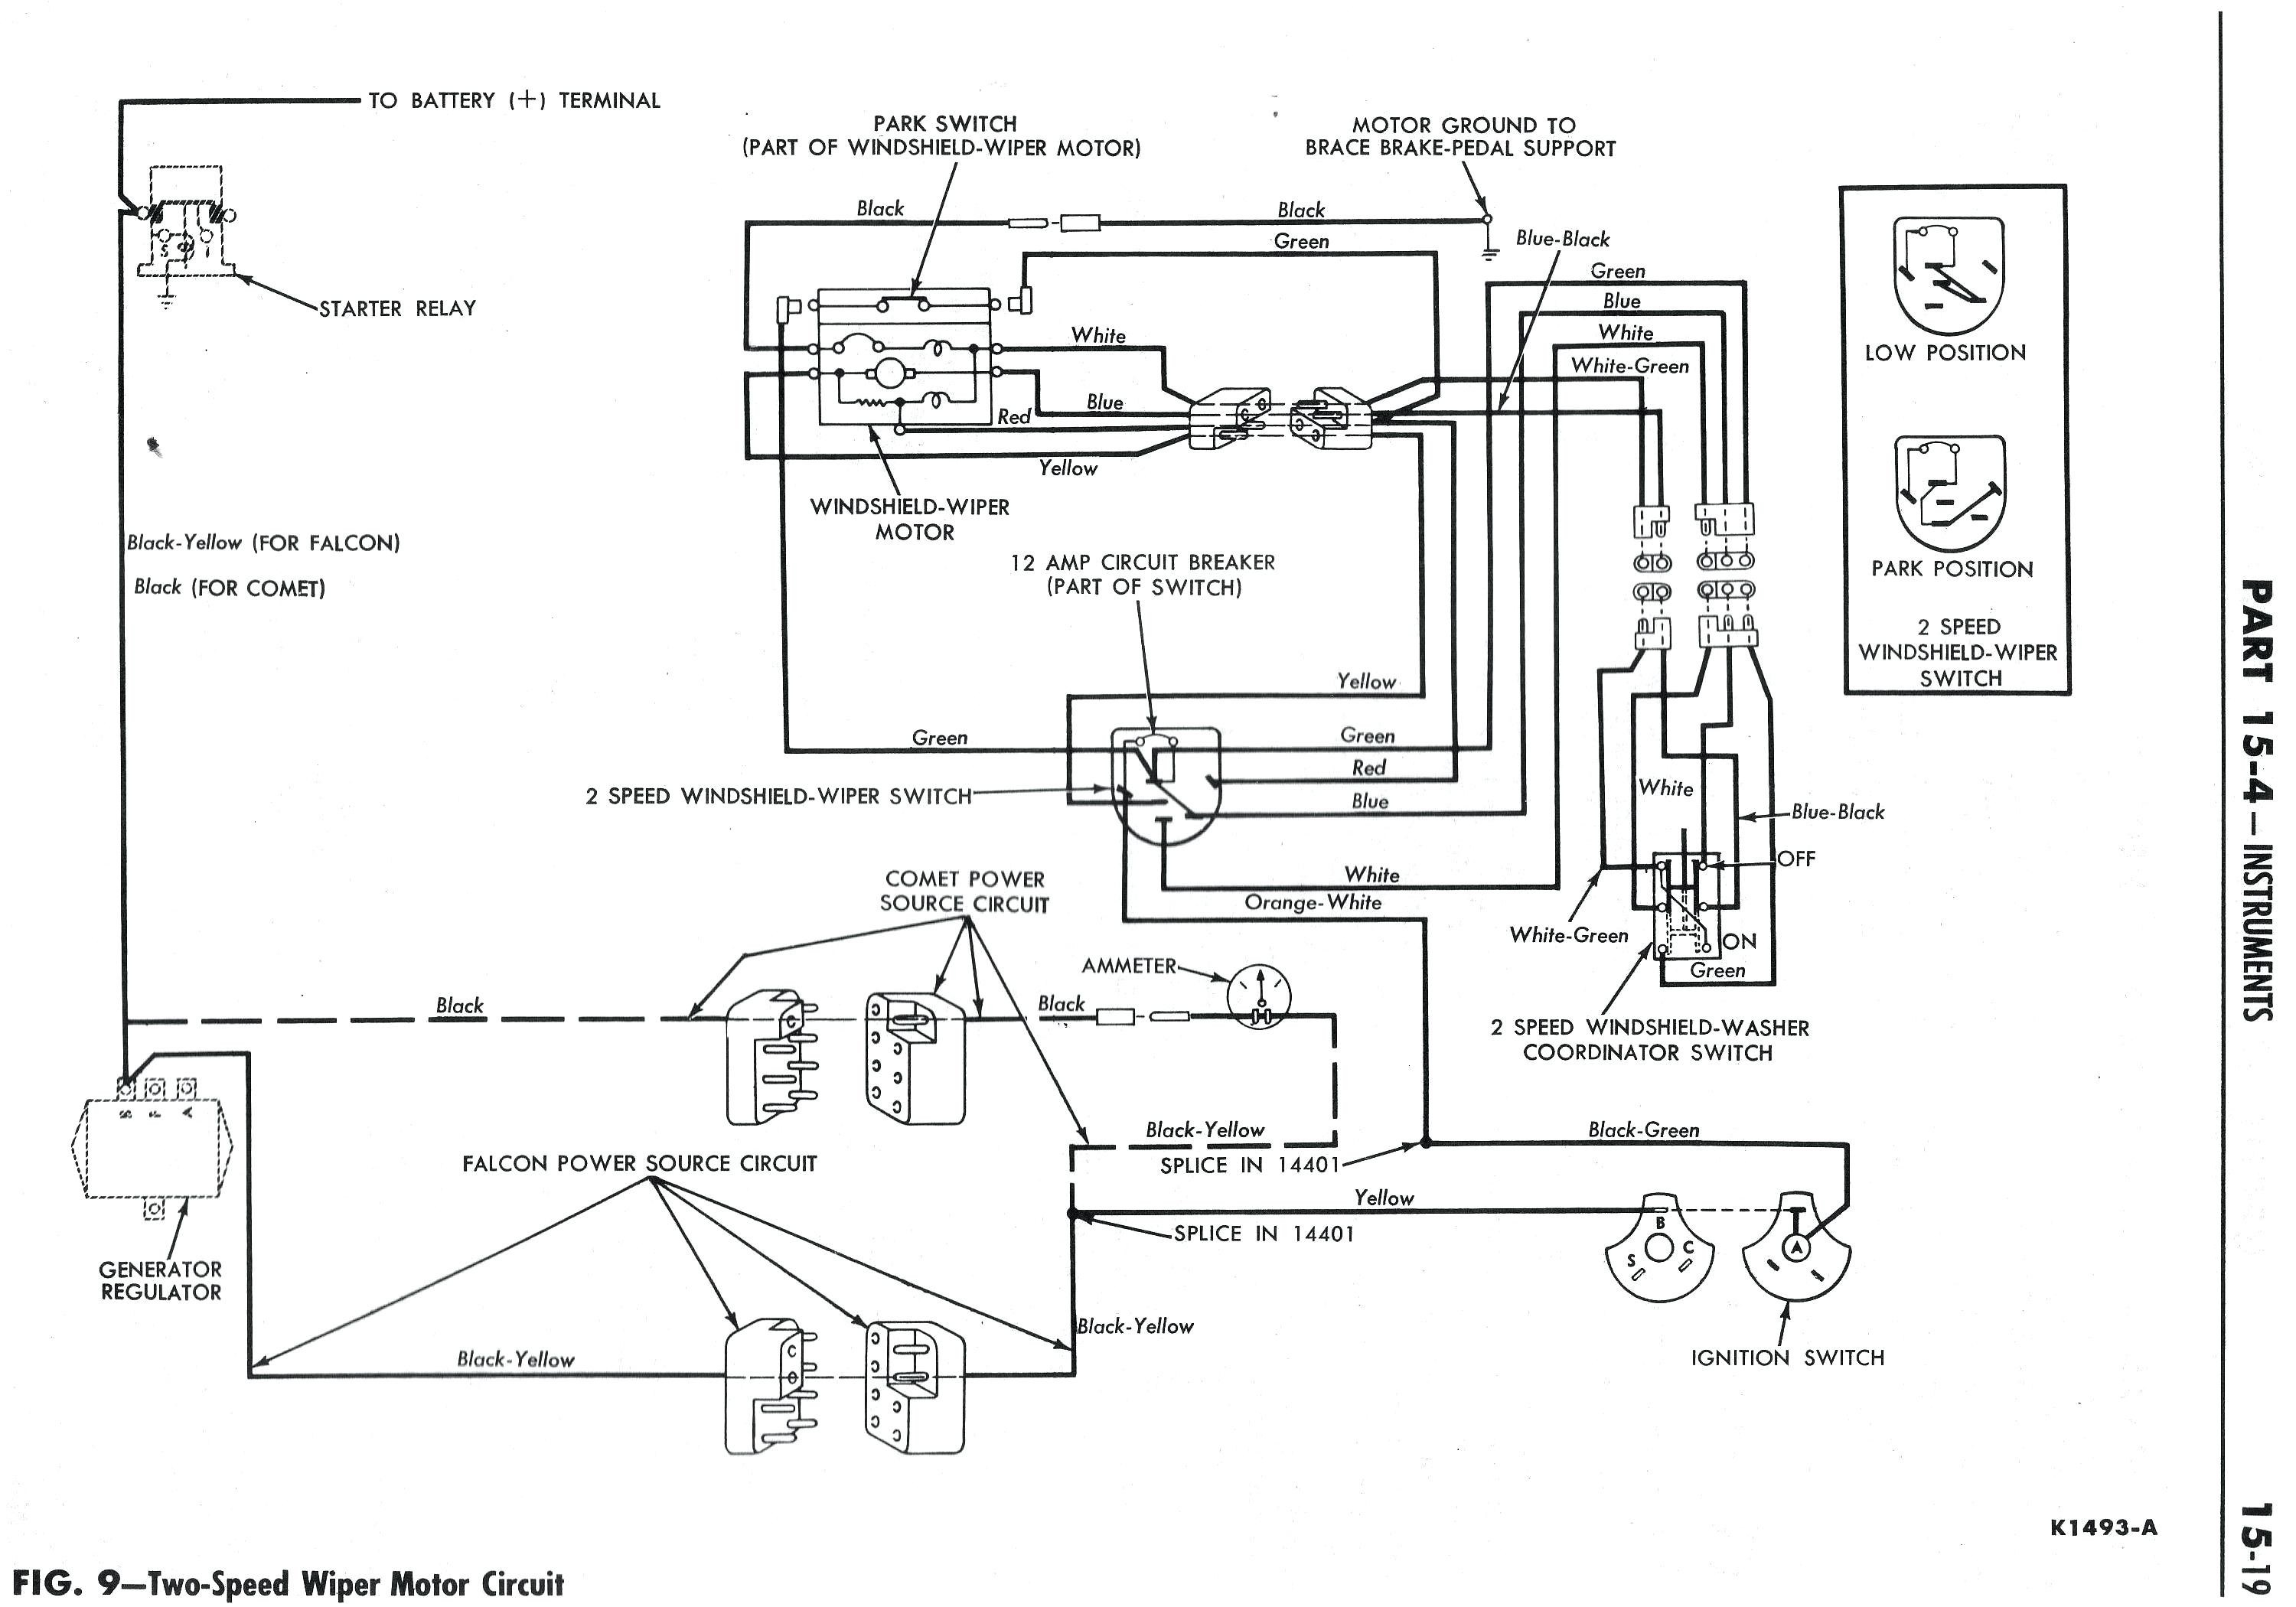 Kenwood Kdc 152 Stereo Wiring Diagram | Manual E-Books - Kenwood Kdc 152 Wiring Diagram